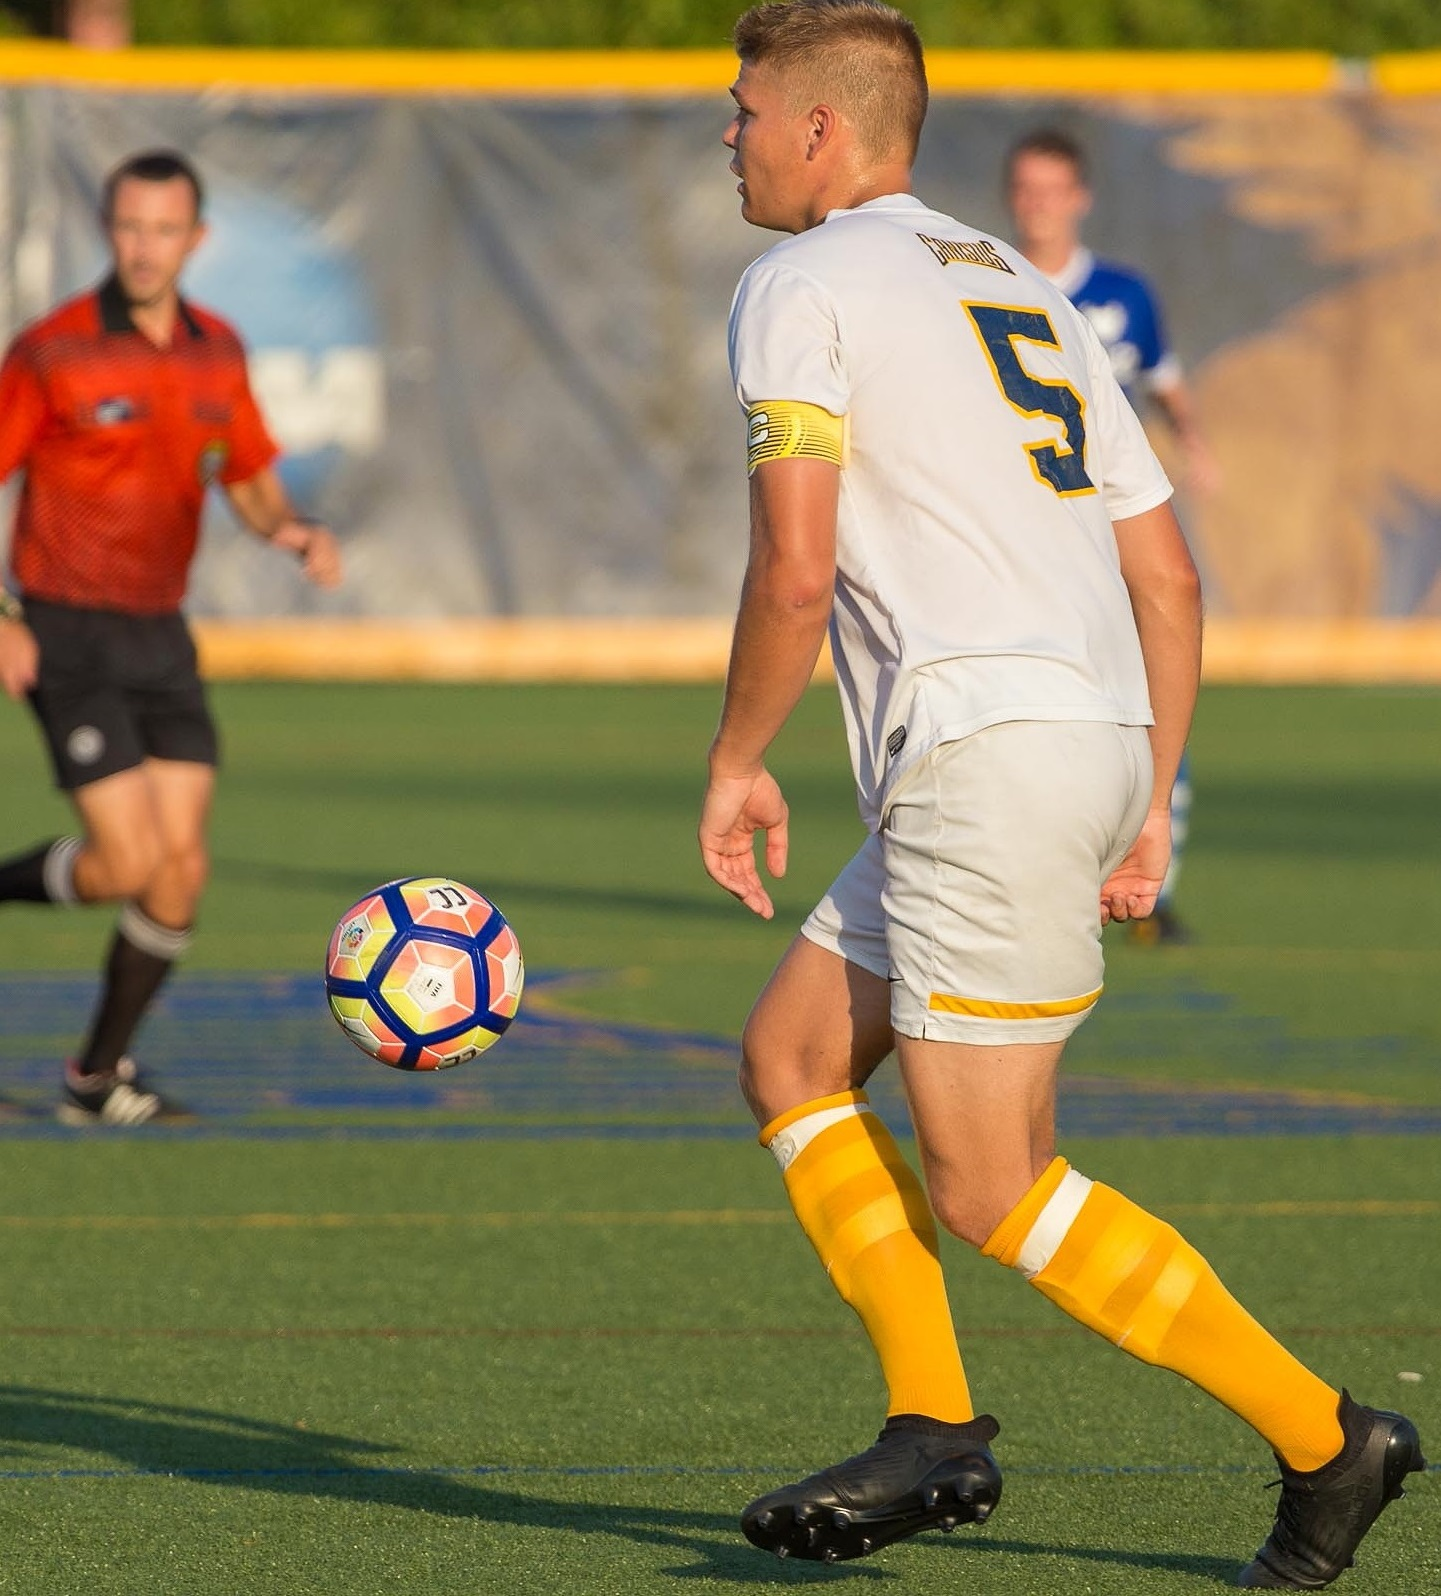 Canisius center back Teupen is a menace in the air and sound with the ball at his feet. (Don Nieman/Special to The News)